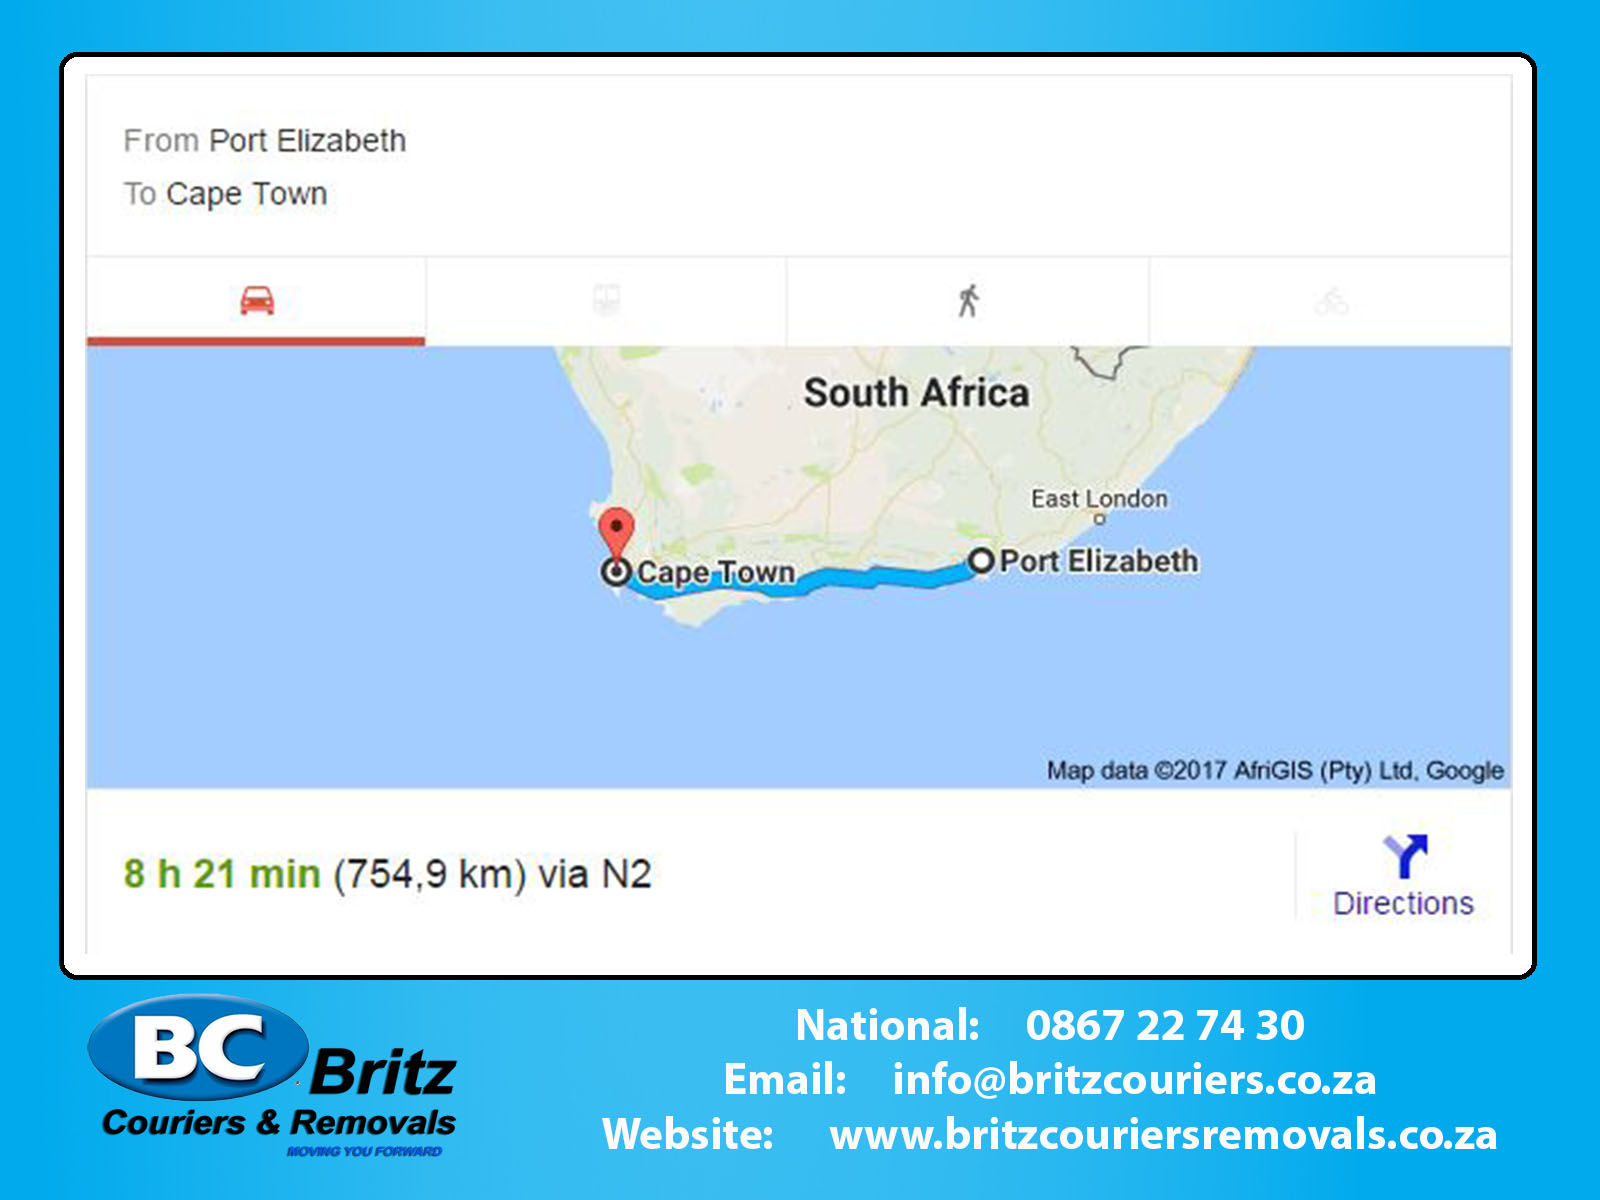 Furniture Removals Port Elizabeth To Cape Town Britz Couriers Removals